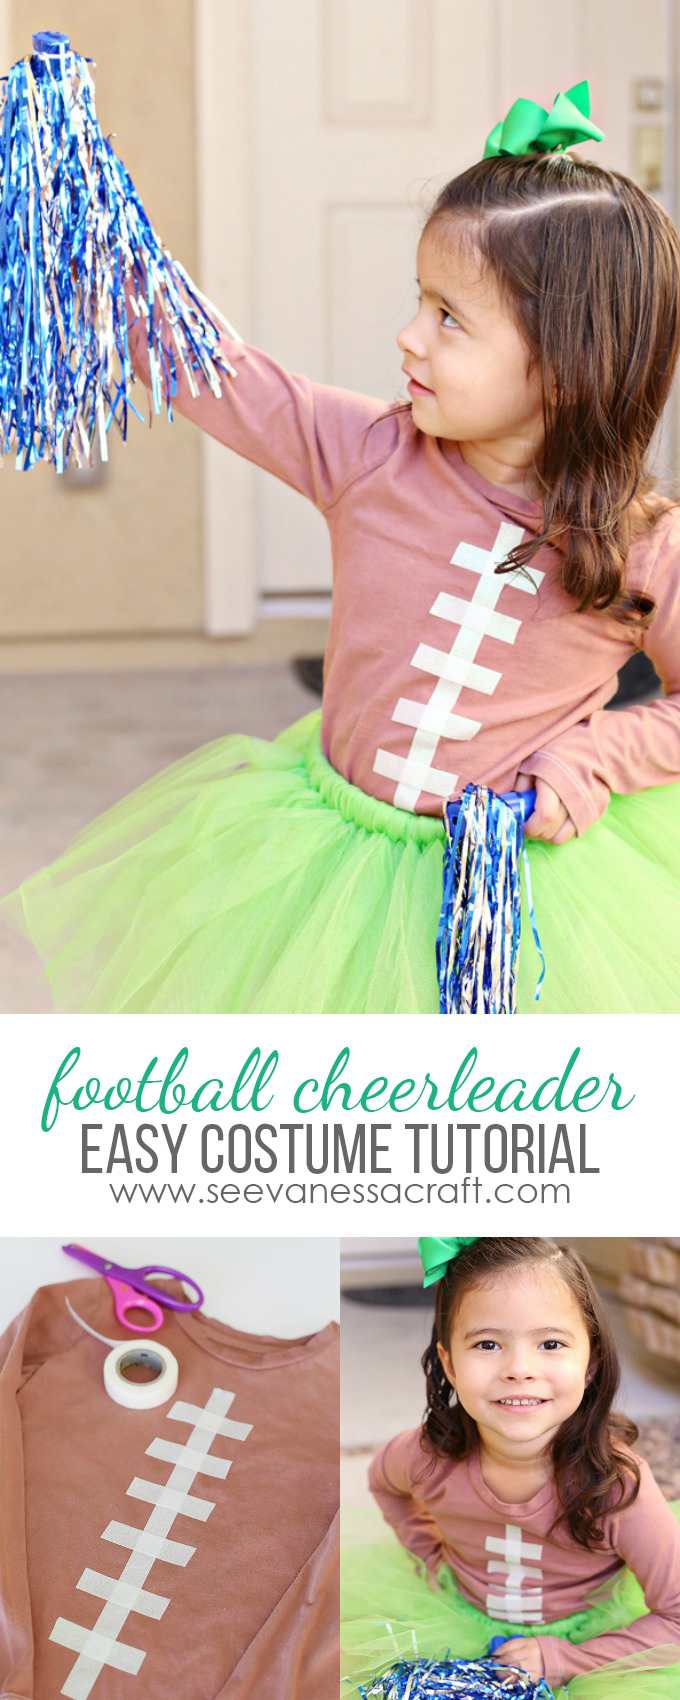 easy-football-cheerleader-costume-tutorial-for-halloween-or-game-day